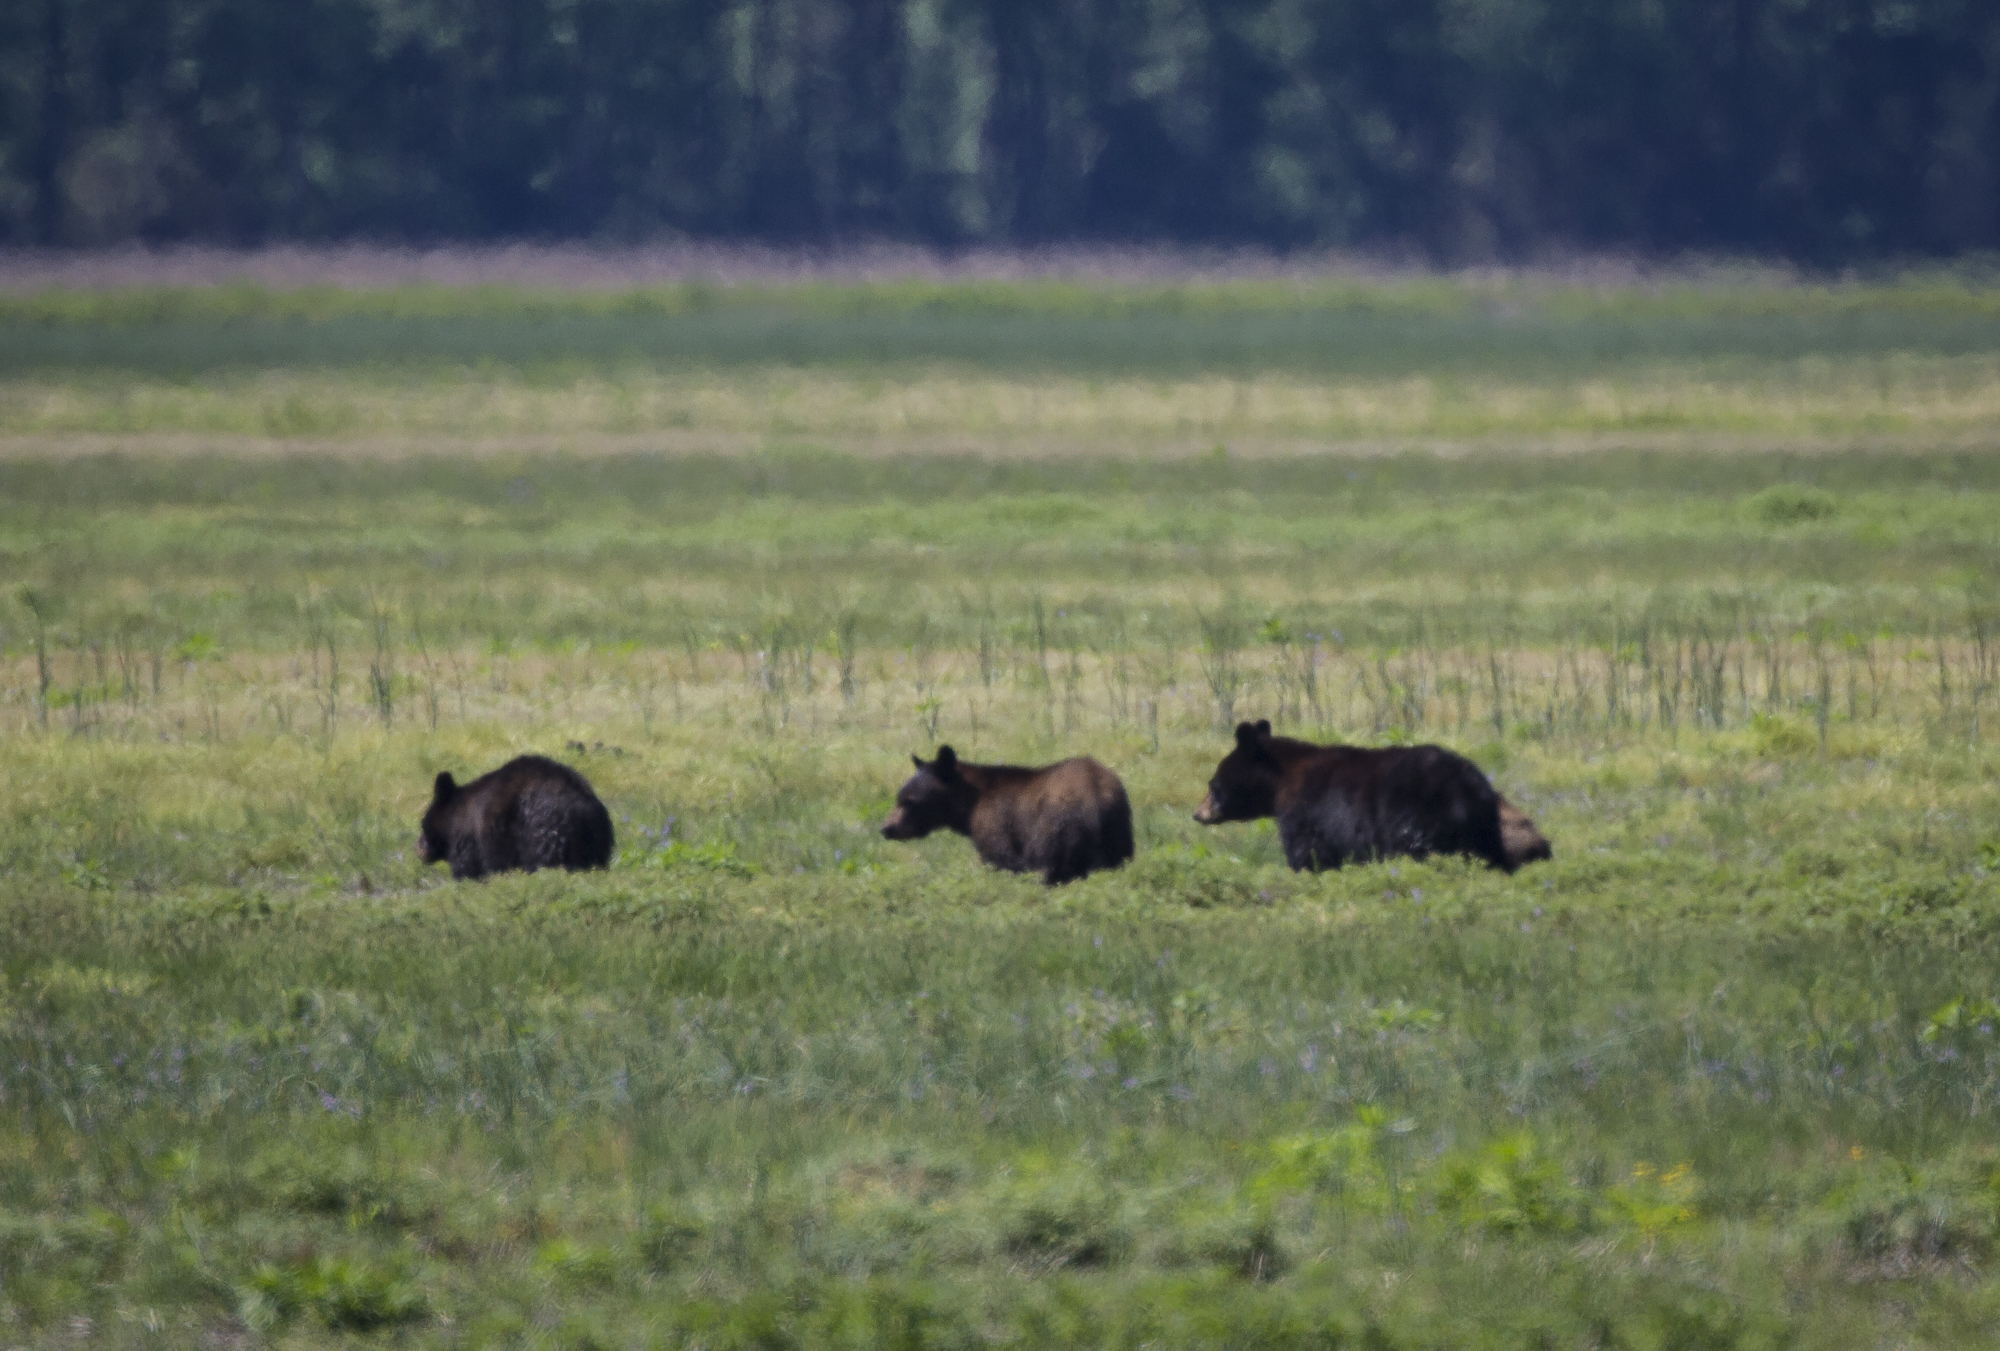 bears in field